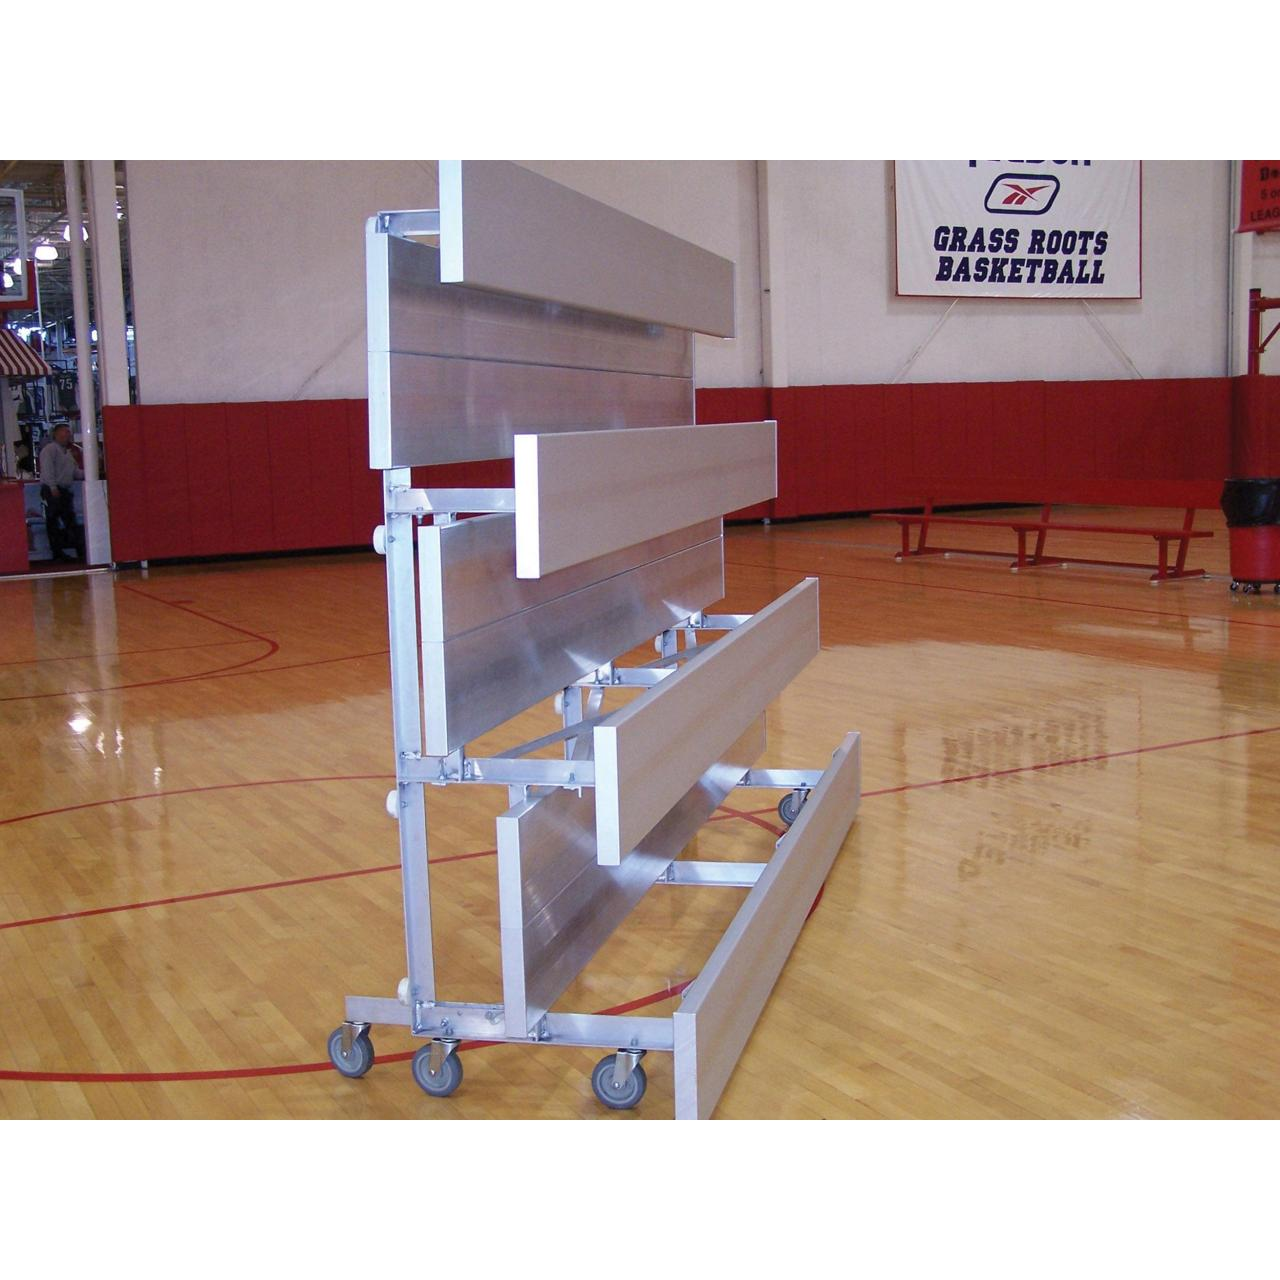 Buy cheap Baseball-Softball Tip-N-Roll Bleachers 3 Row 21' Tip-N-Roll Bleacher from wholesalers